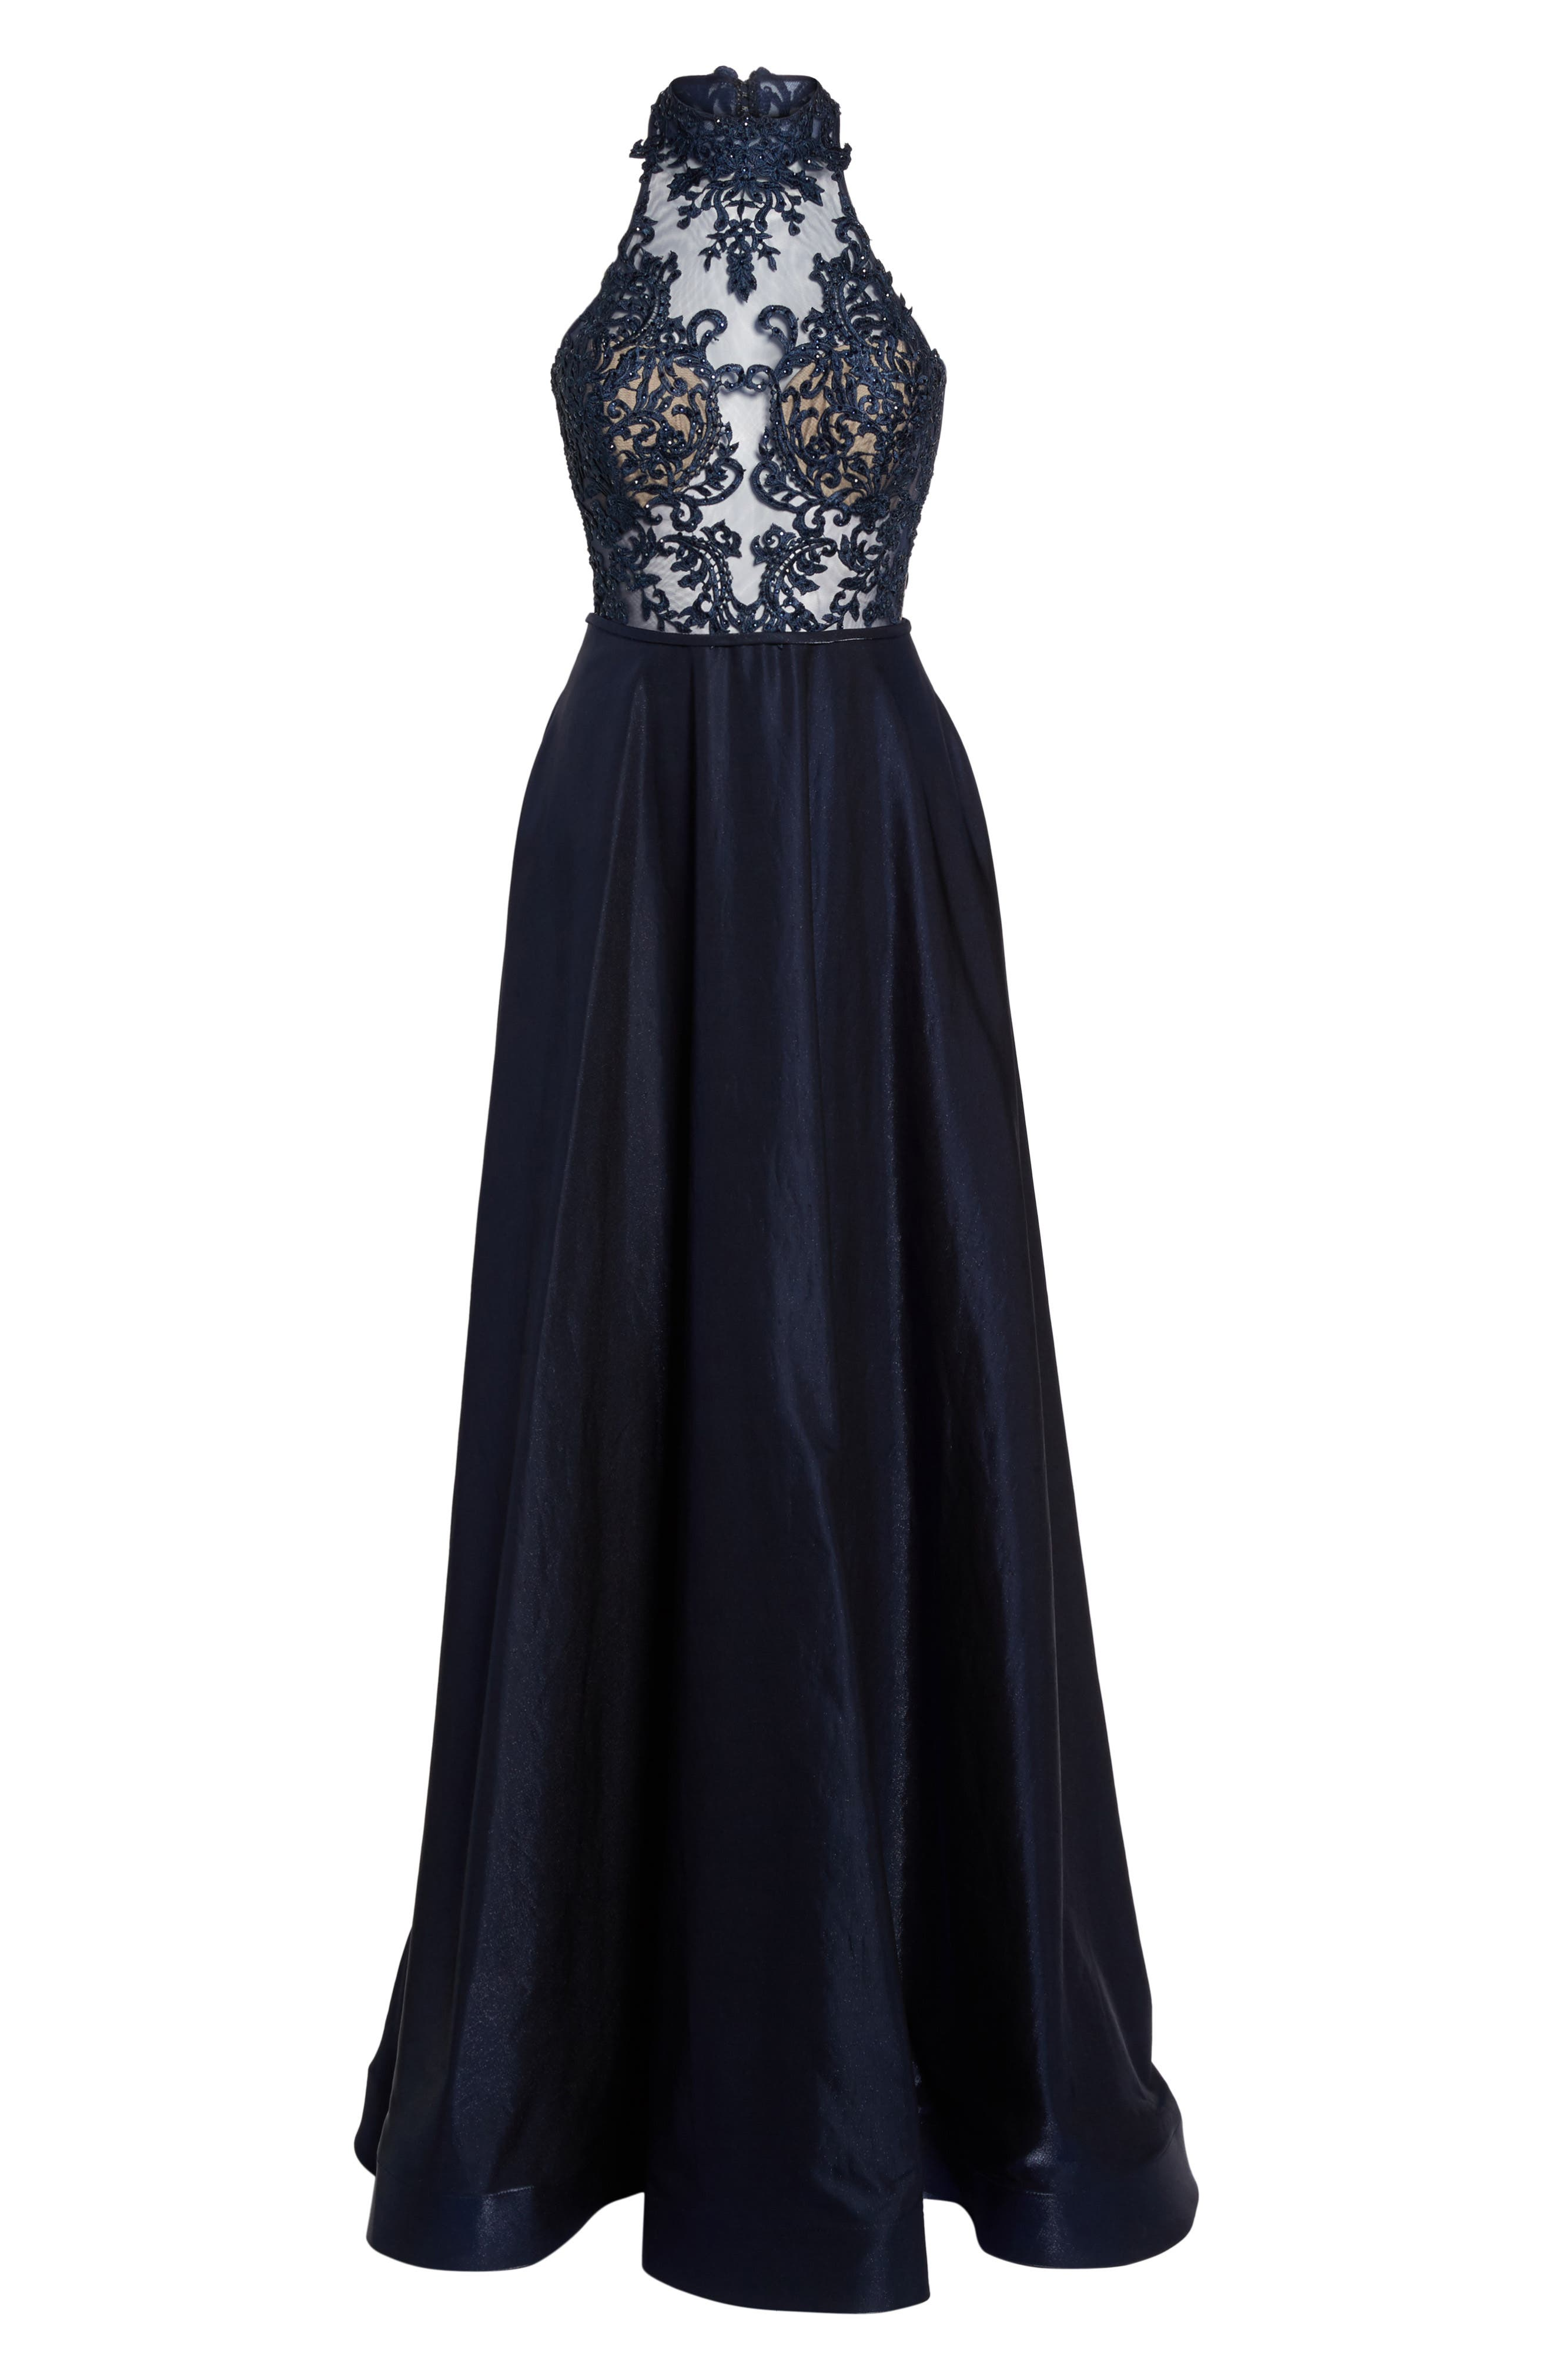 Embroidered Lace & Satin A-Line Ballgown,                             Alternate thumbnail 6, color,                             Navy